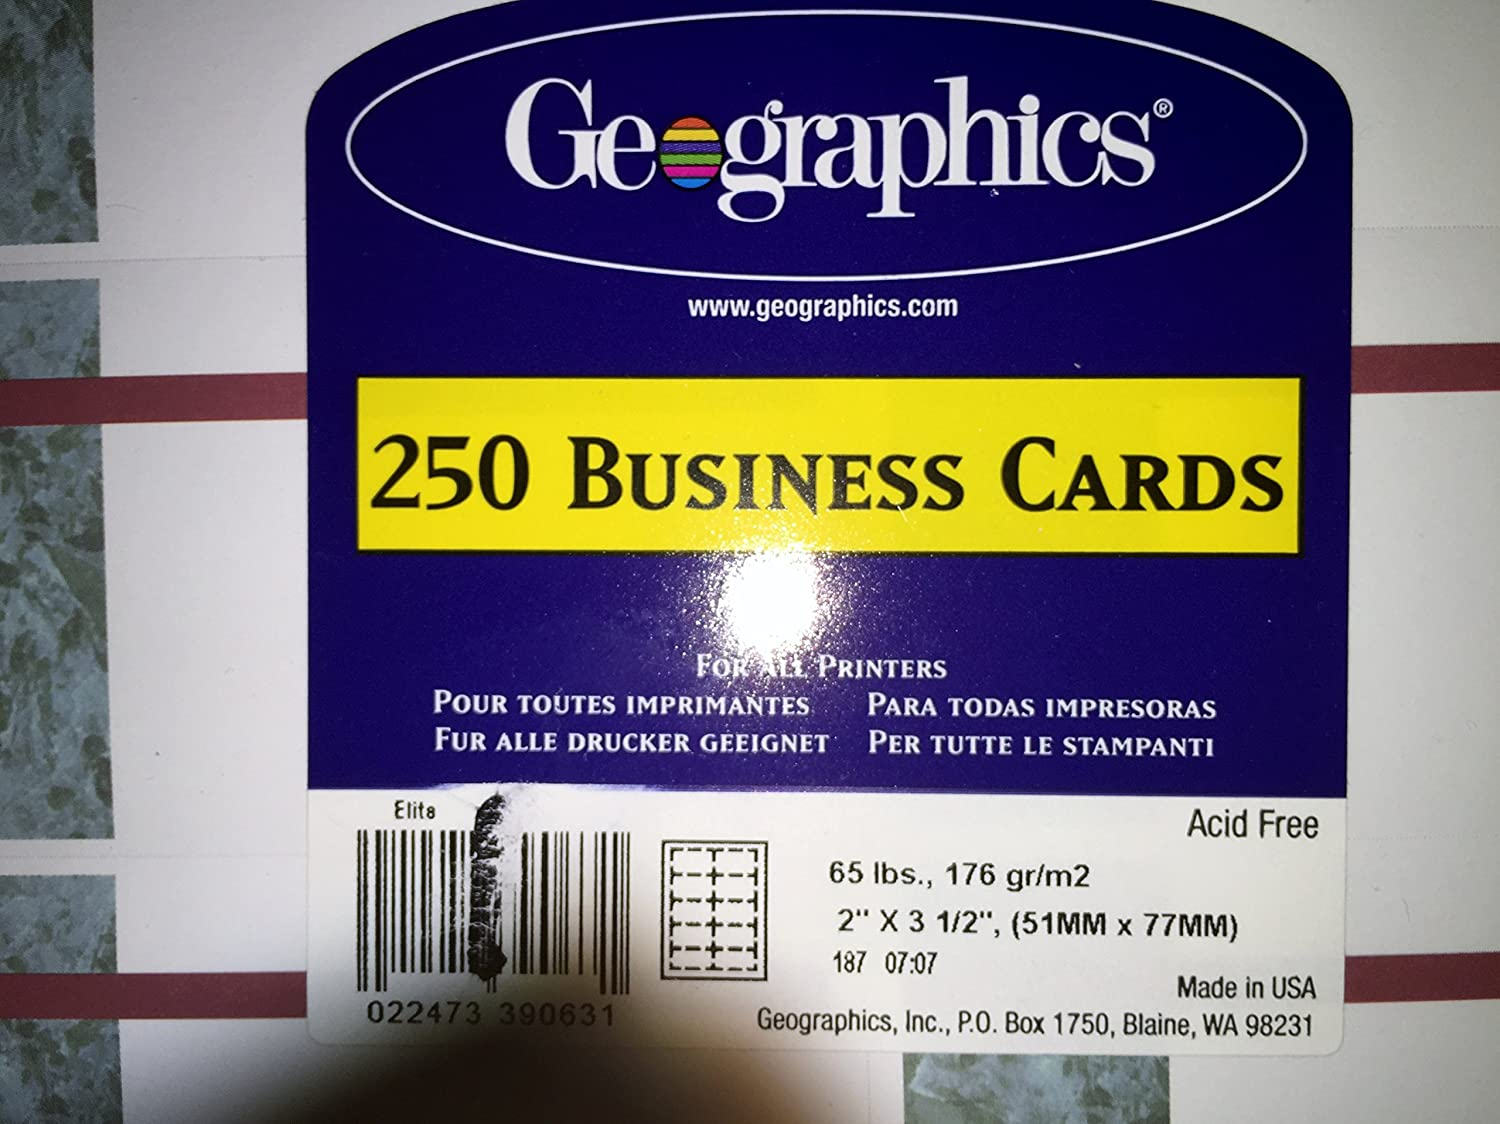 Amazon geographics do it yourself250 business cards acid amazon geographics do it yourself250 business cards acid free 2 x 35 inches made in usa home kitchen solutioingenieria Images